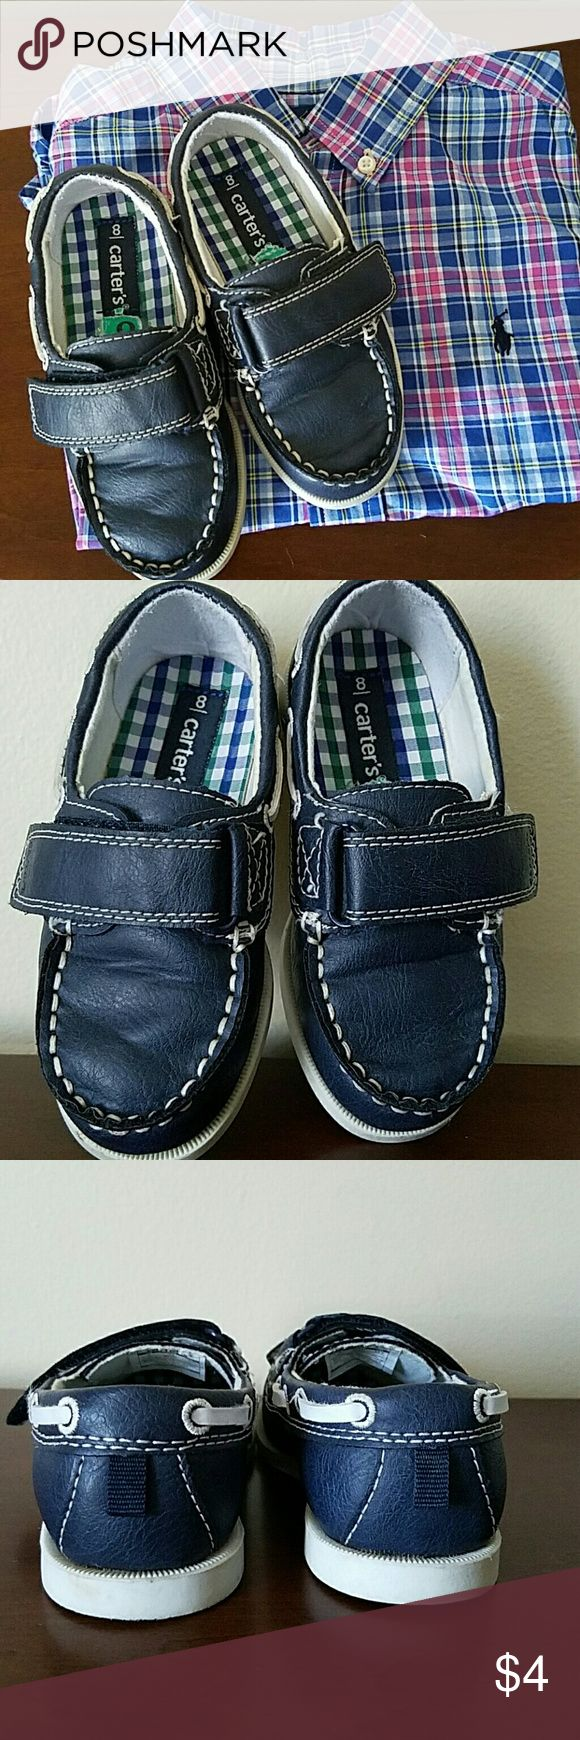 Carters Navy Blue Loafers Sweet boat shoes all ready to be worn this summer! They are nice because they are just enough to look casual but not too casual. *shirt not included* Carter's Shoes Dress Shoes